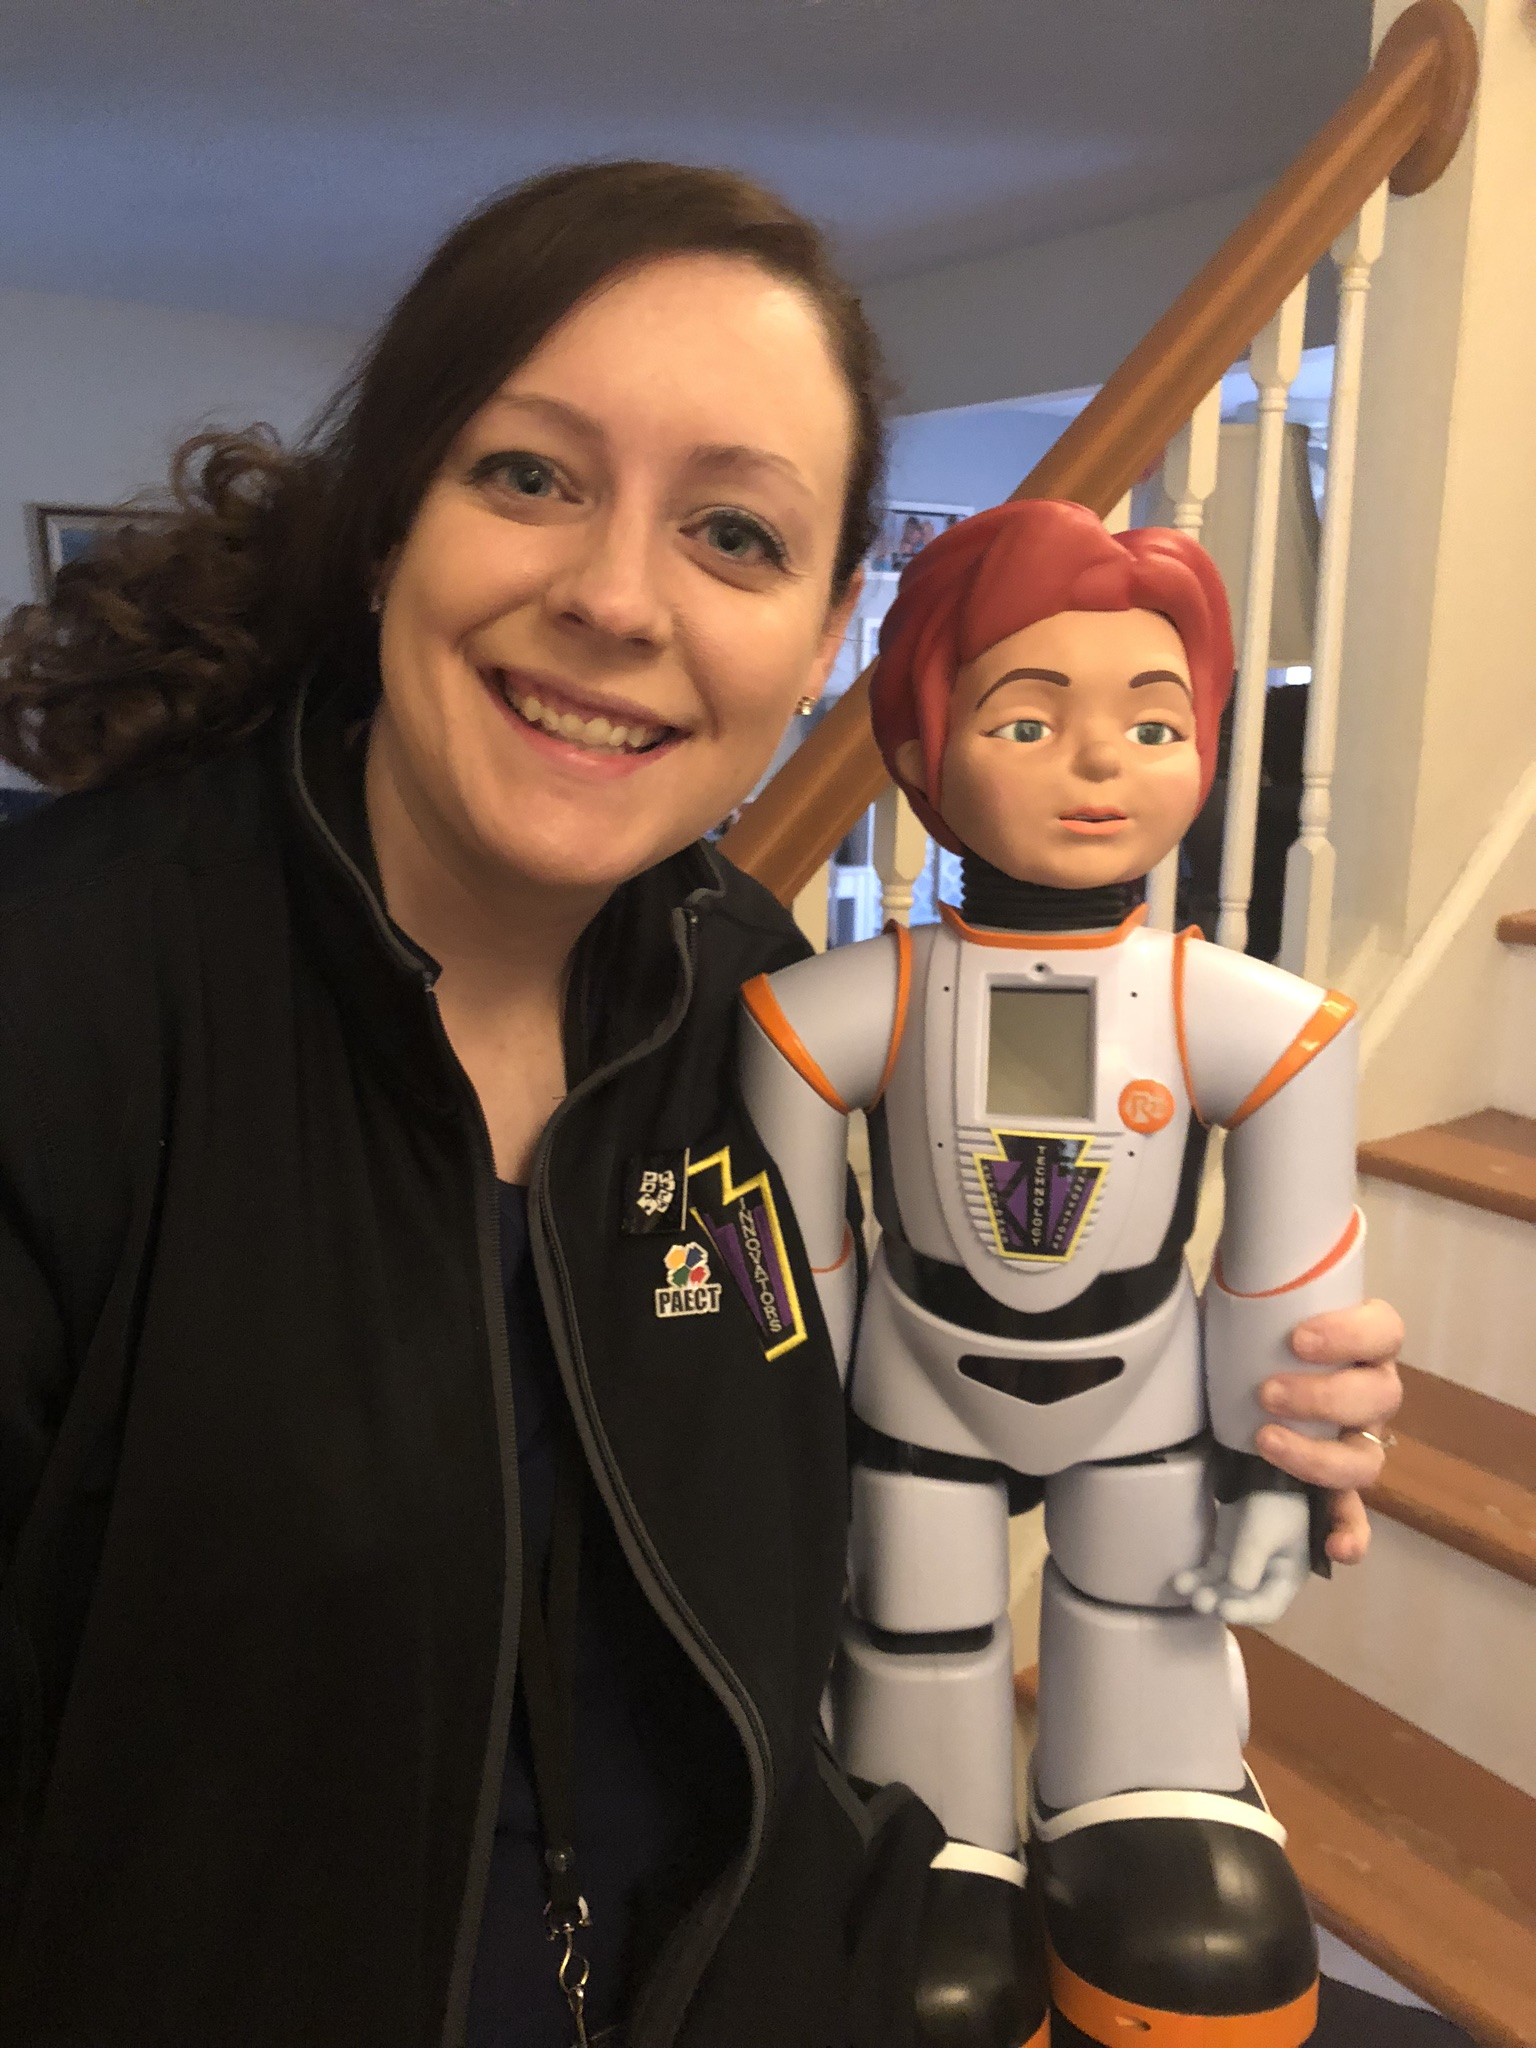 Dr. Redcay posing with the femaile humanoid named Robon.